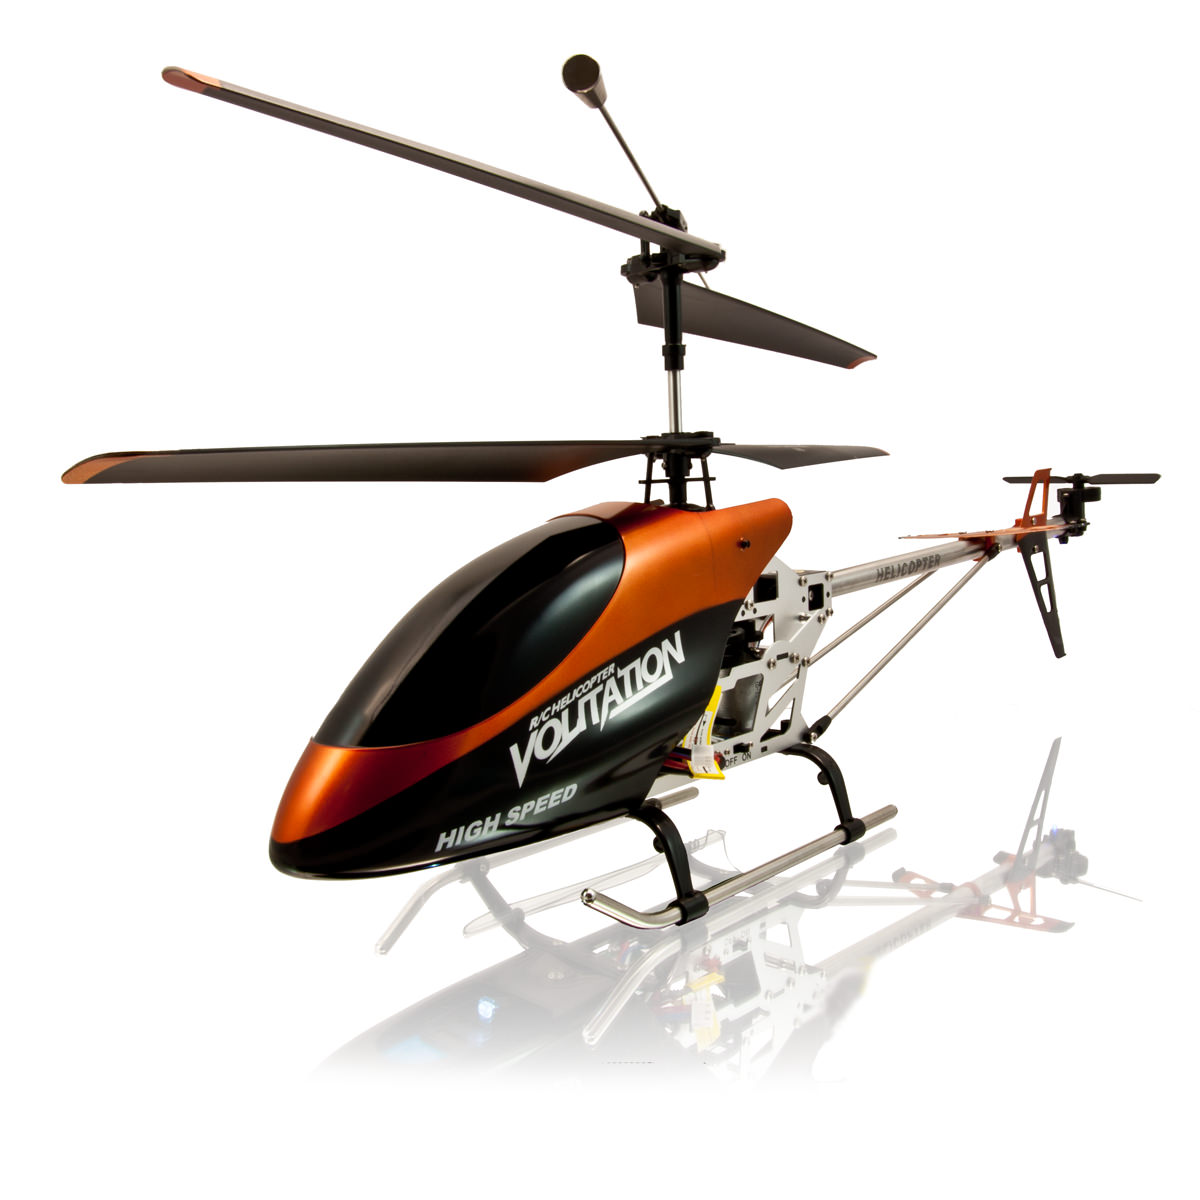 Double Horse 9053 Volitation Rc Helicopter At Hobby Warehouse